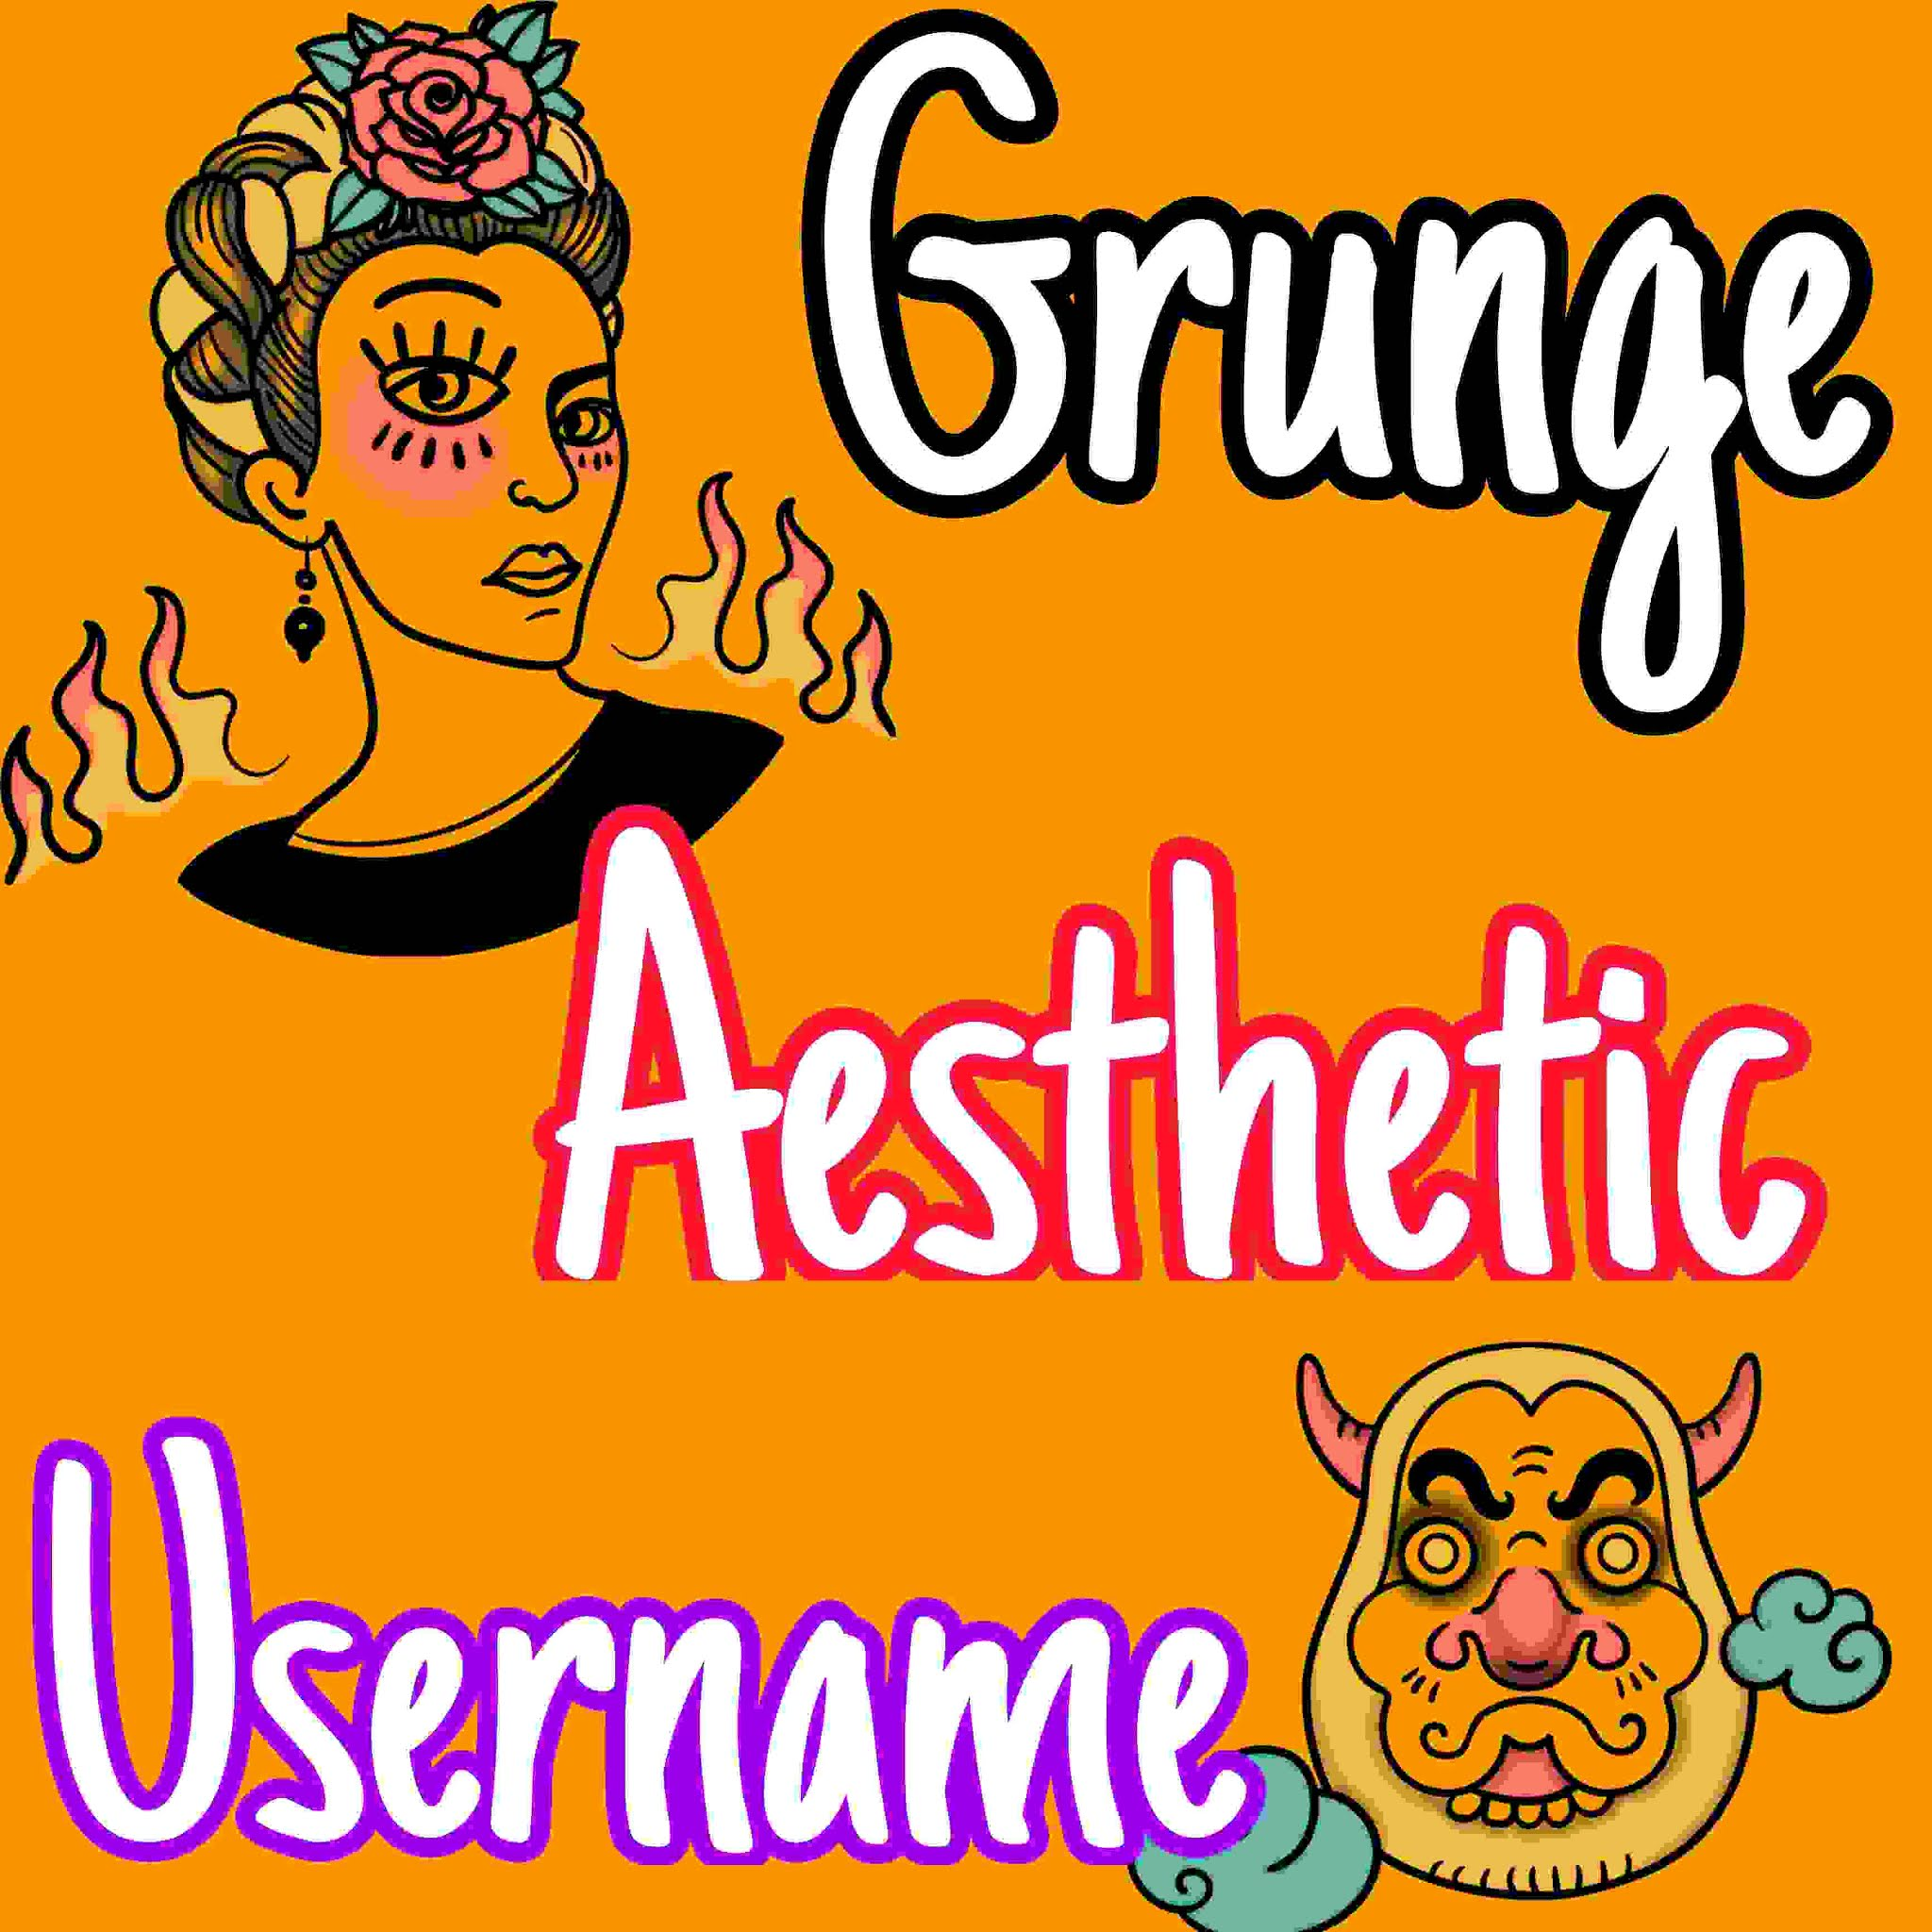 20+ Unique And Not Taken Grunge Aesthetic Username For Instagram